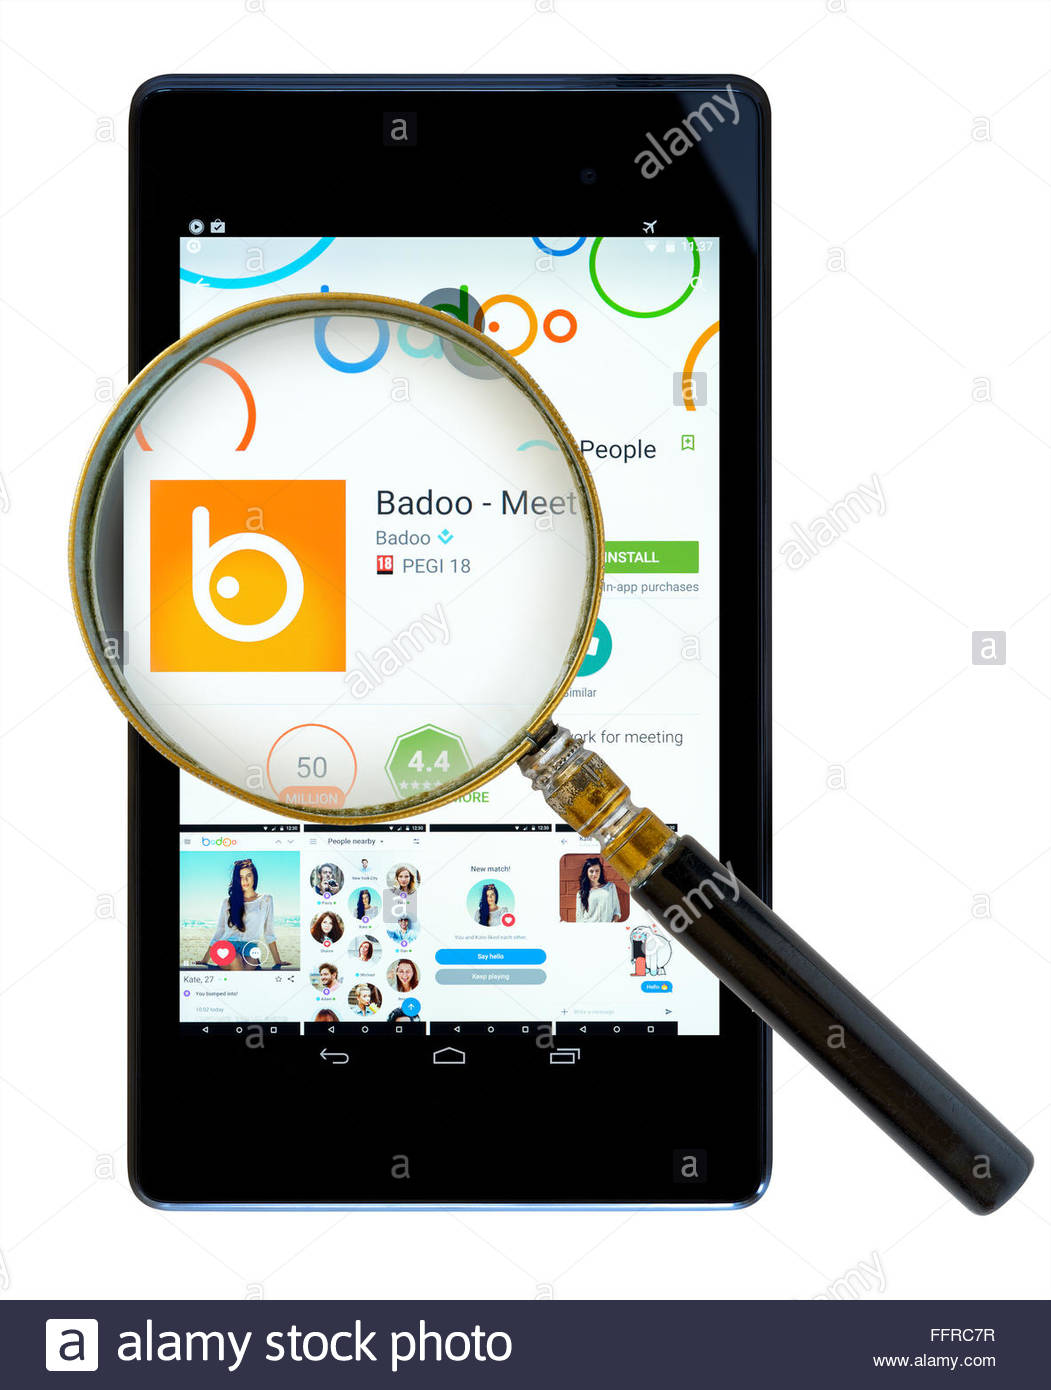 badoo application free download for android